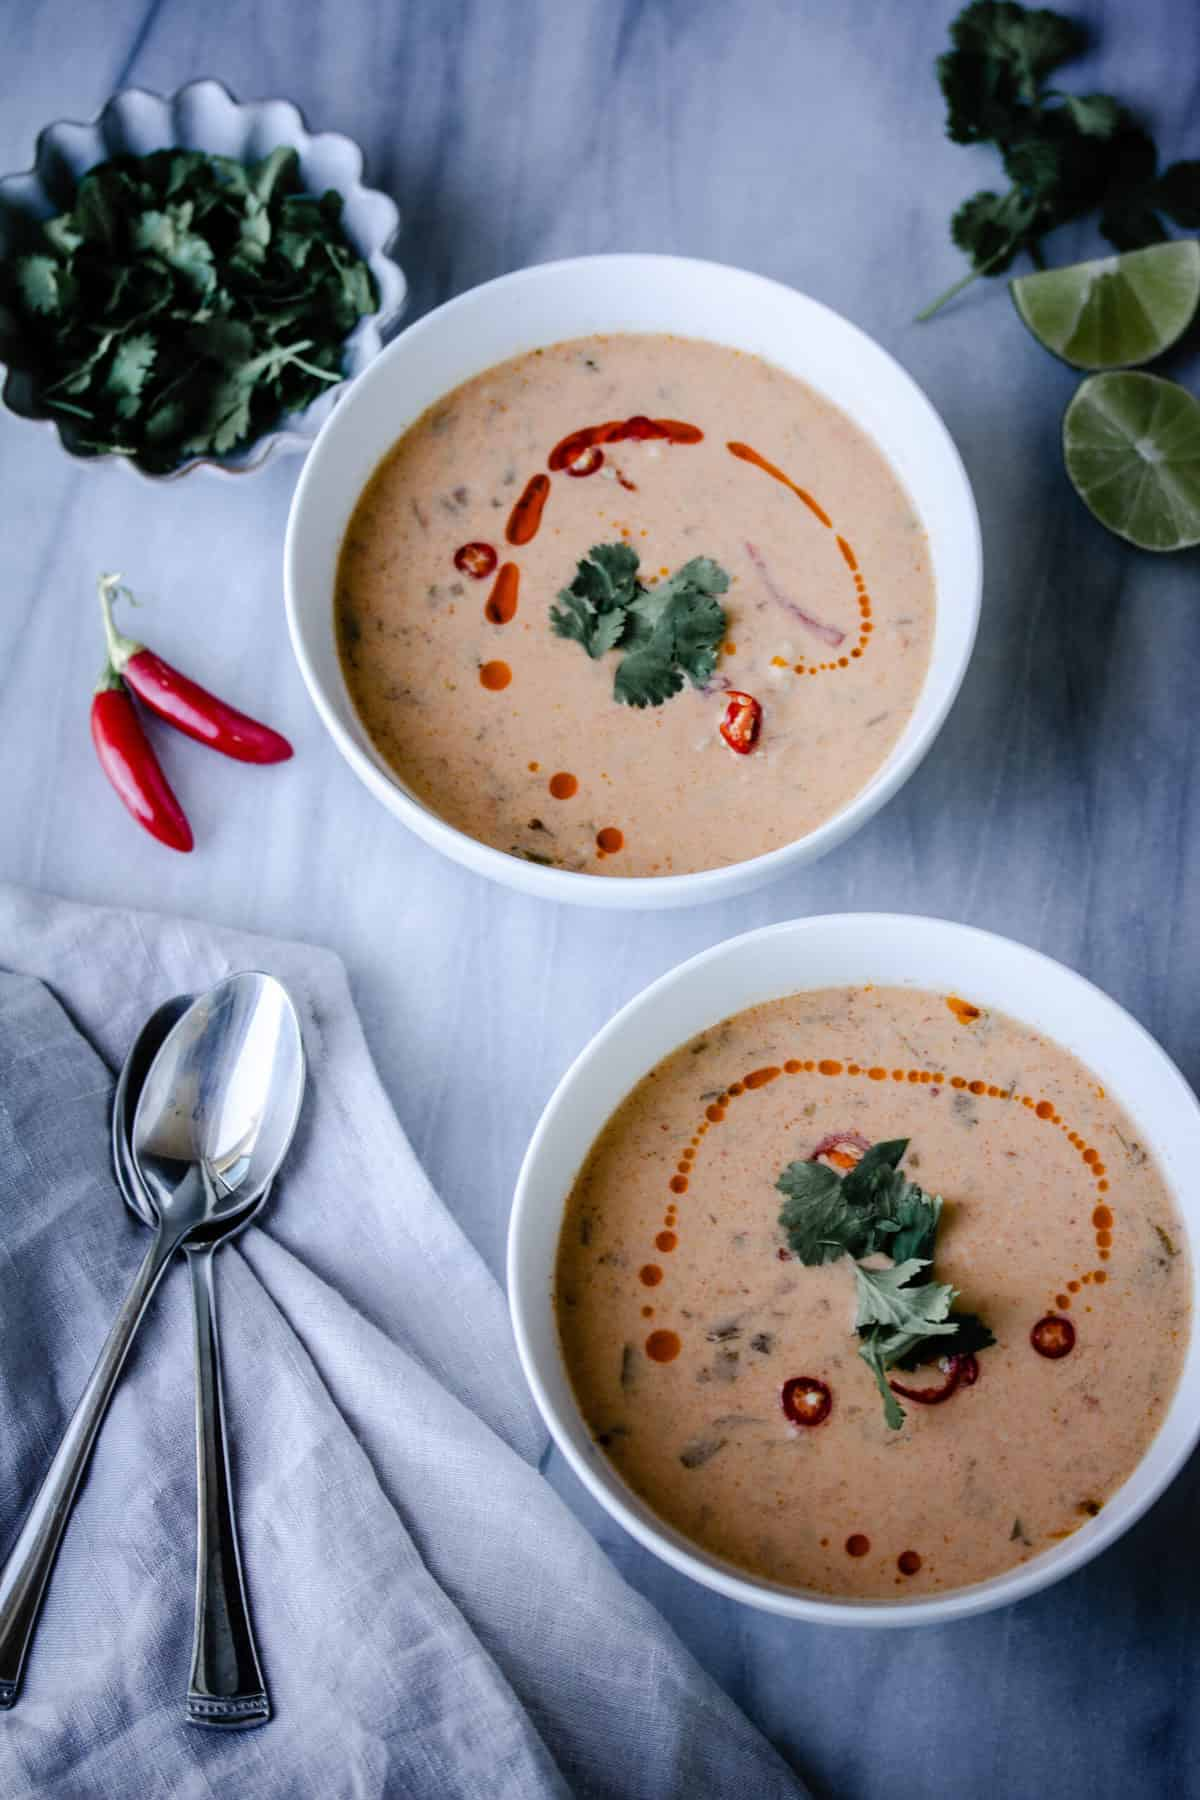 Thai Curry Soup in bowls